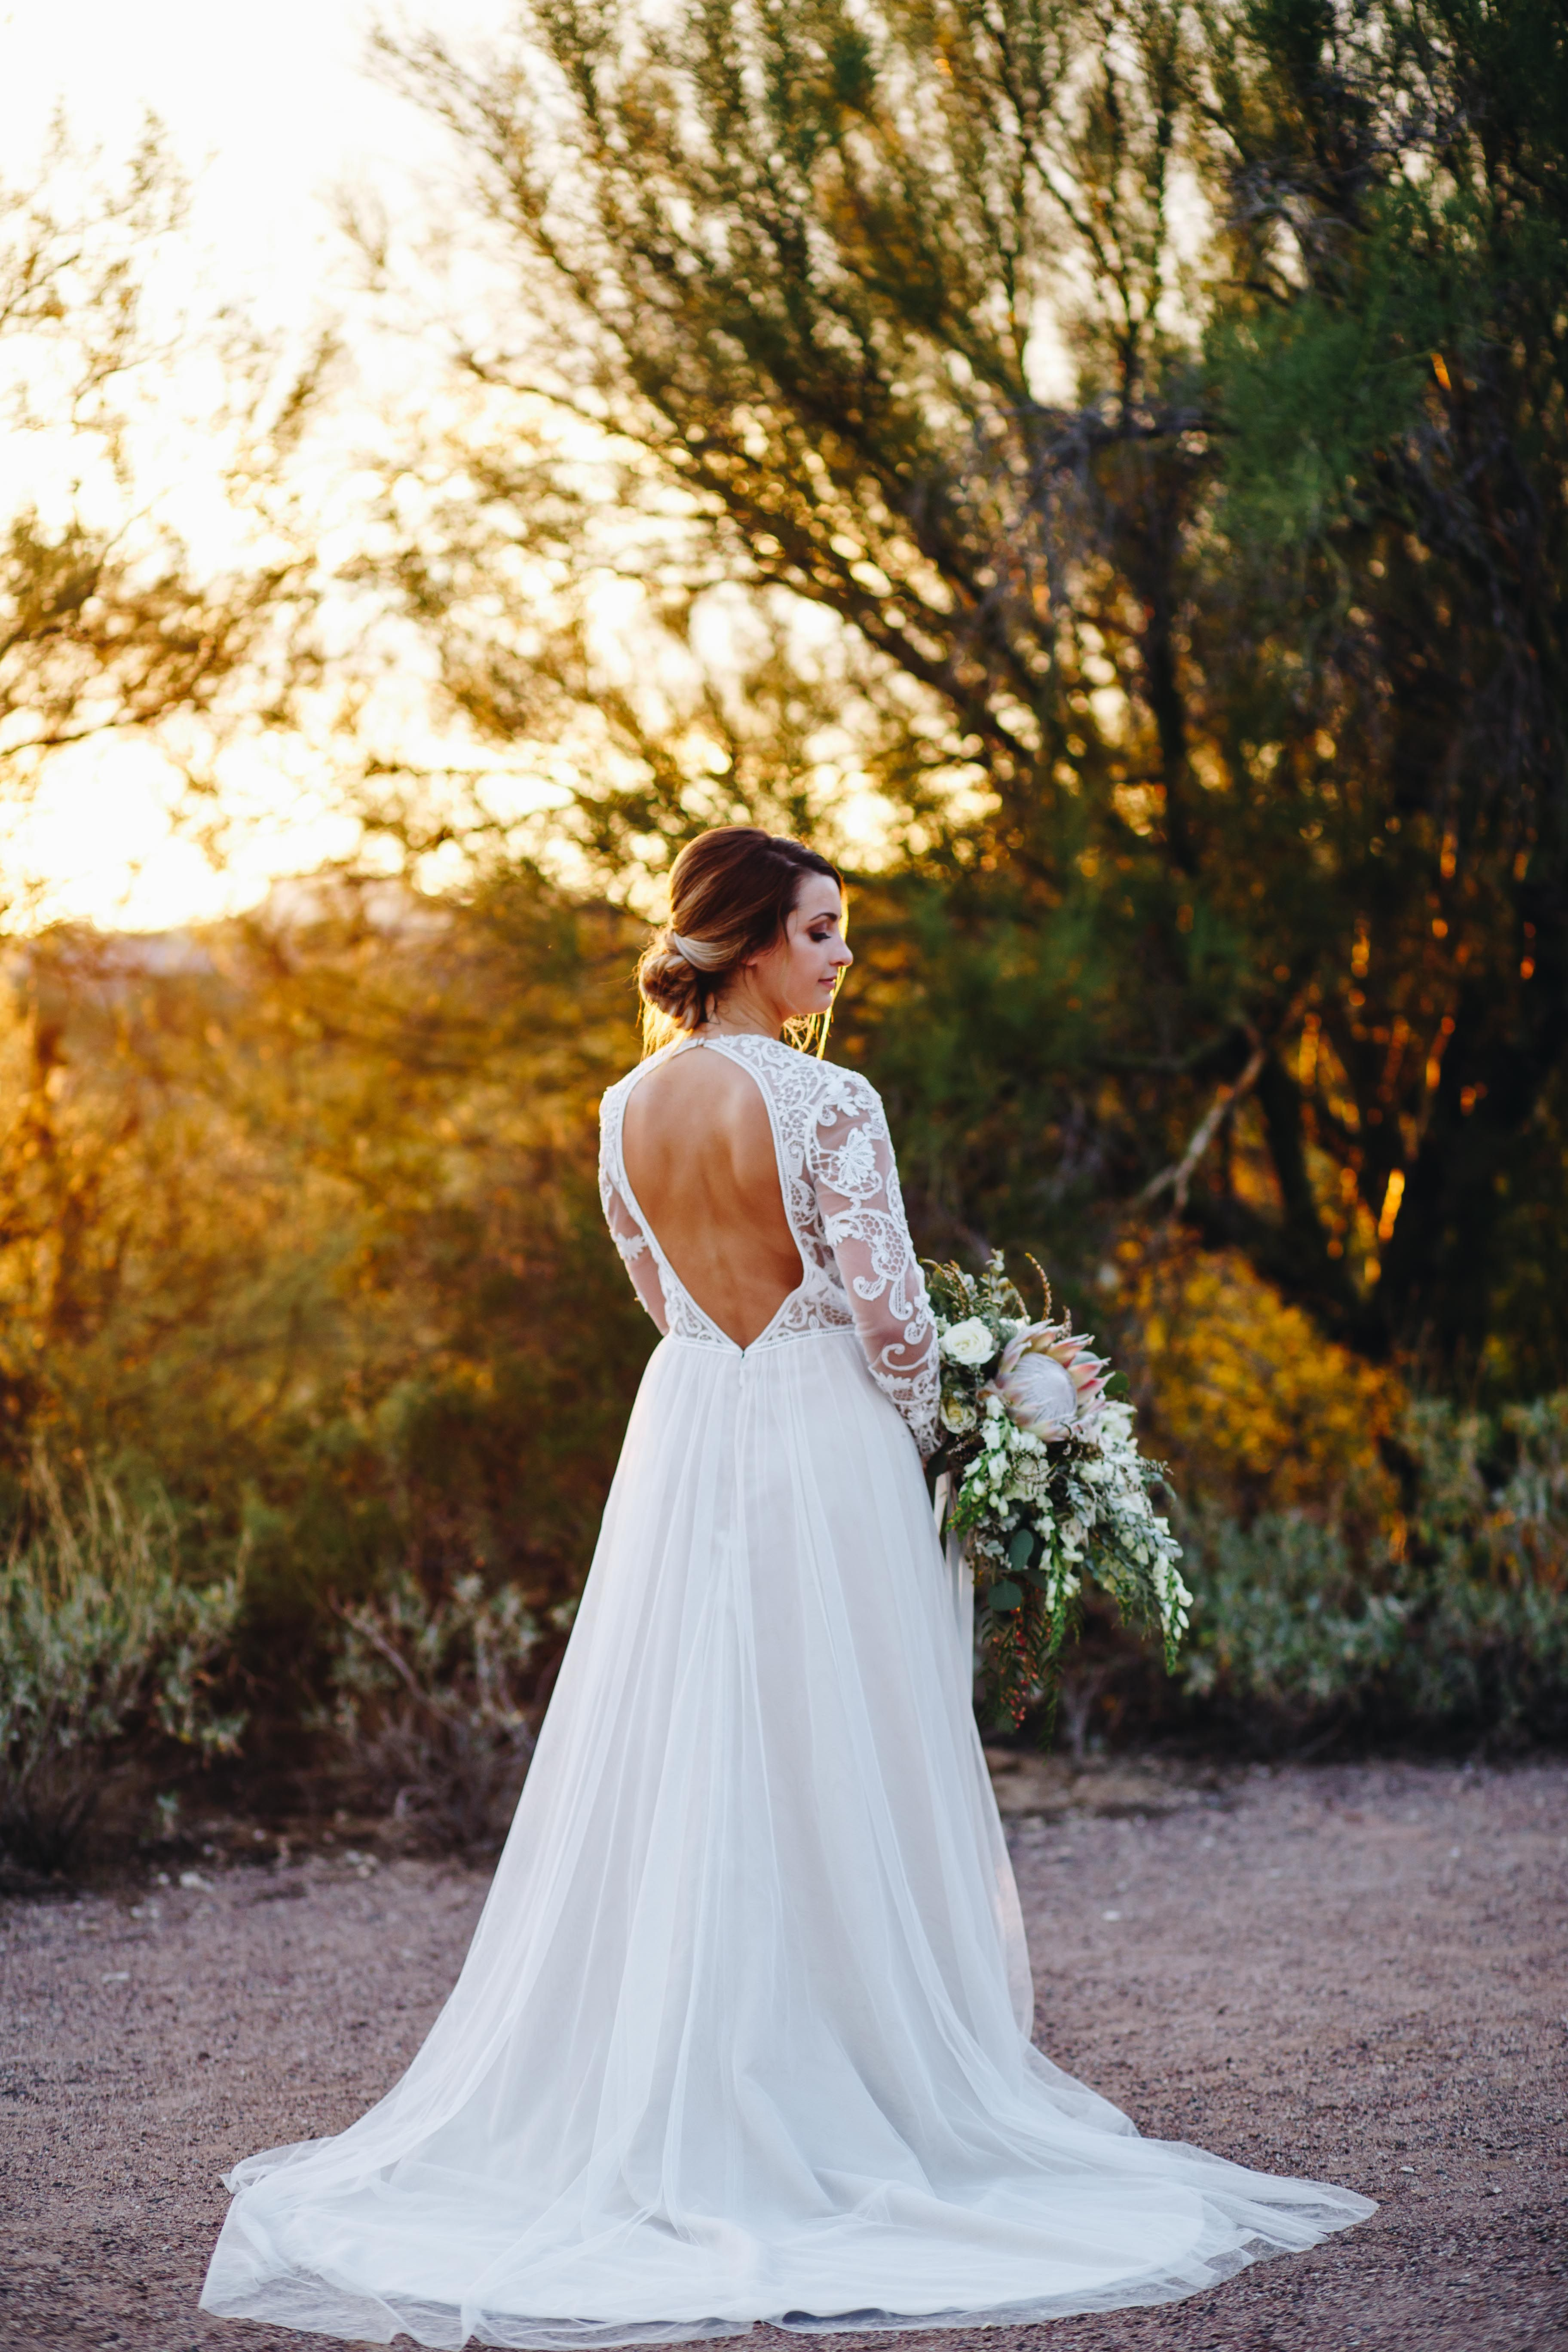 This open back lace vintage dress was perfect for this dreamy